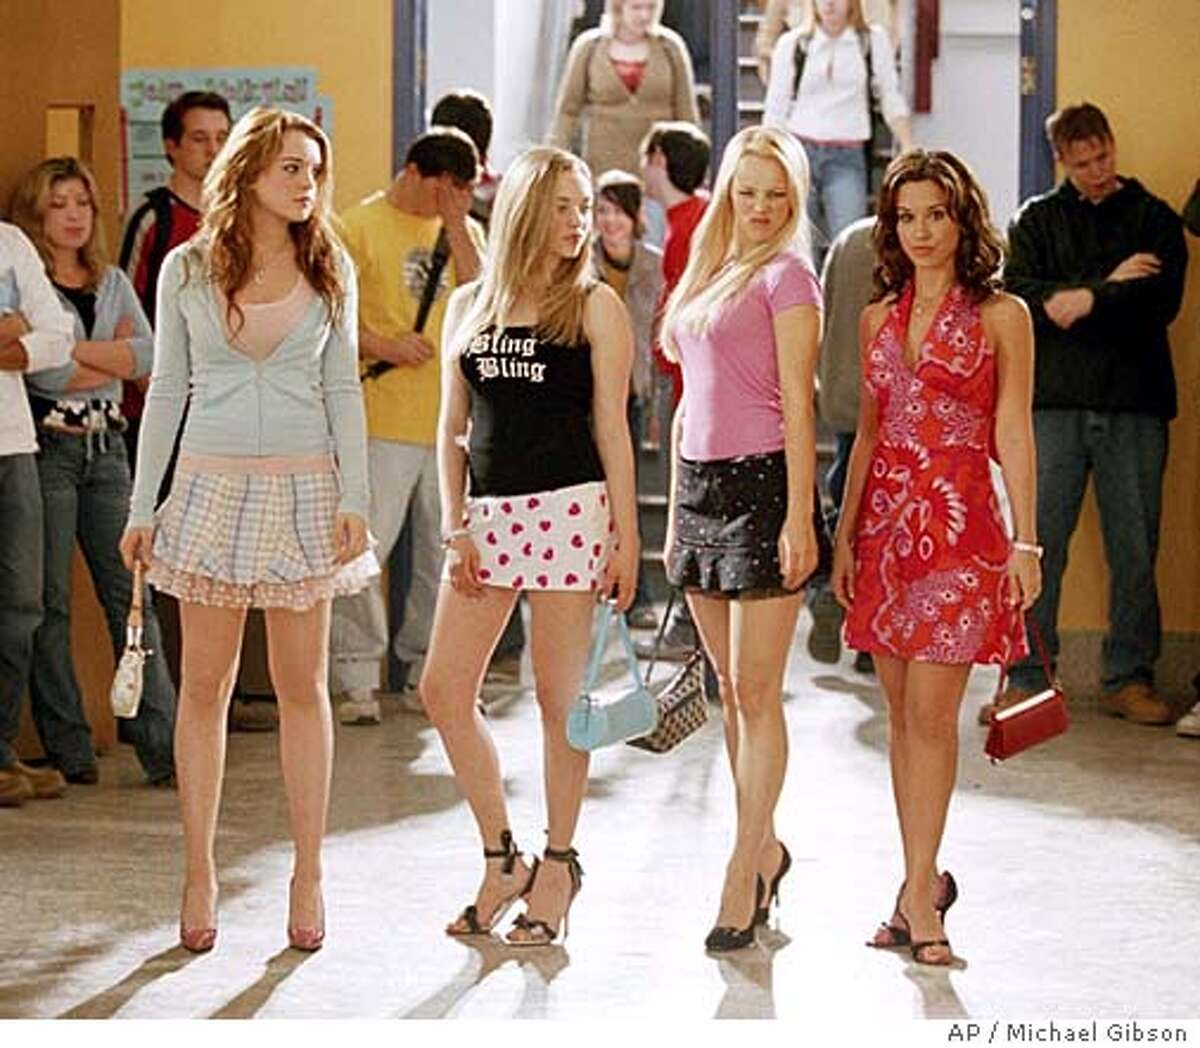 (Left to right) Lindsay Lohan as Cady, Amanda Seyfried as Karen, Rachel McAdams as Regina and Lacey Chabert as Gretchen in Mean Girls. (AP Photo/ Michael Gibson)